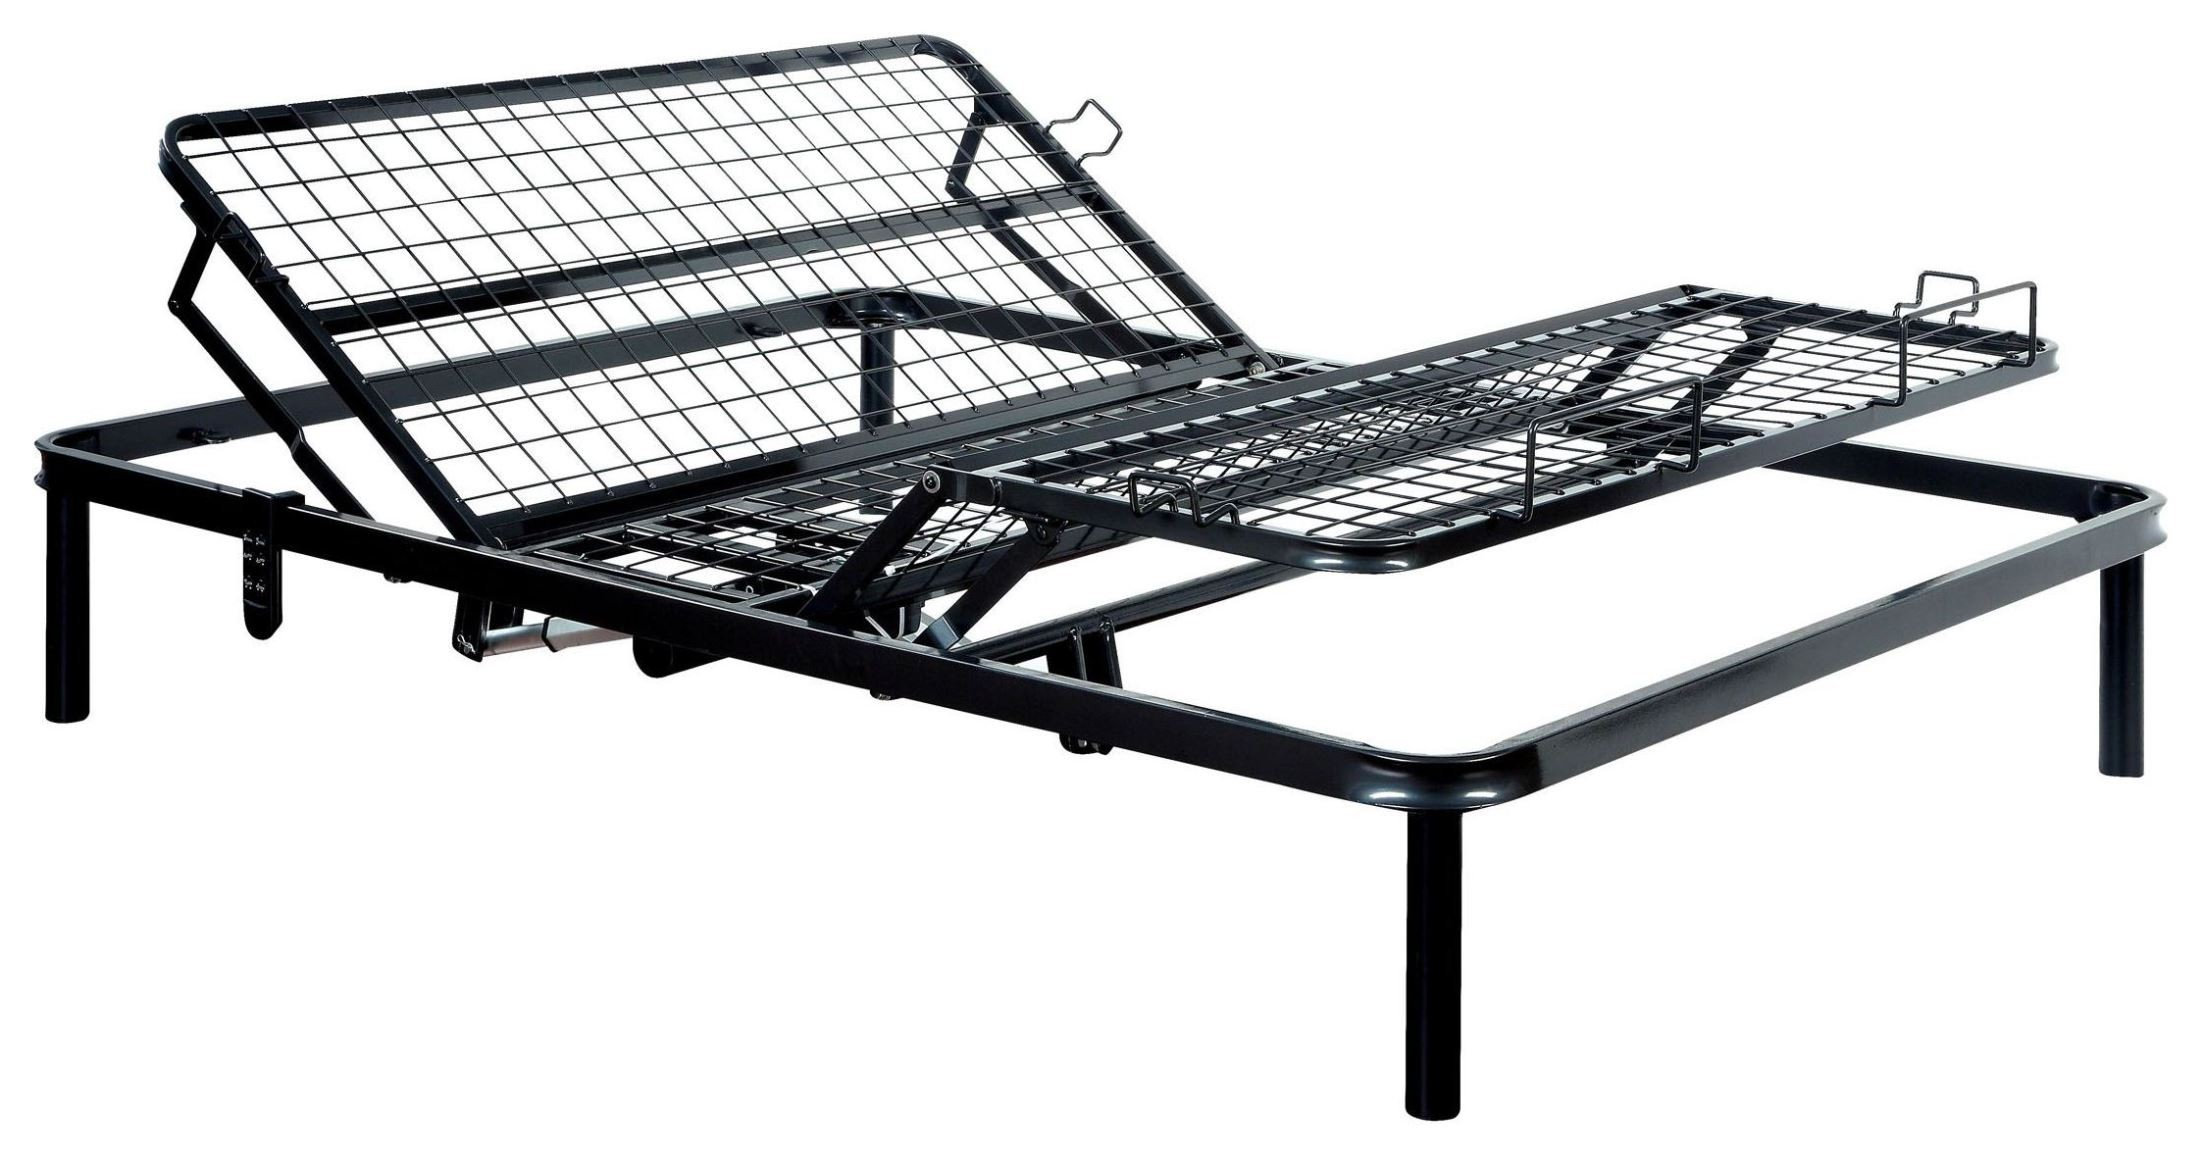 Adjustable Height King Size Bed Frames : Metal bed frame toronto floyd chunky wooden